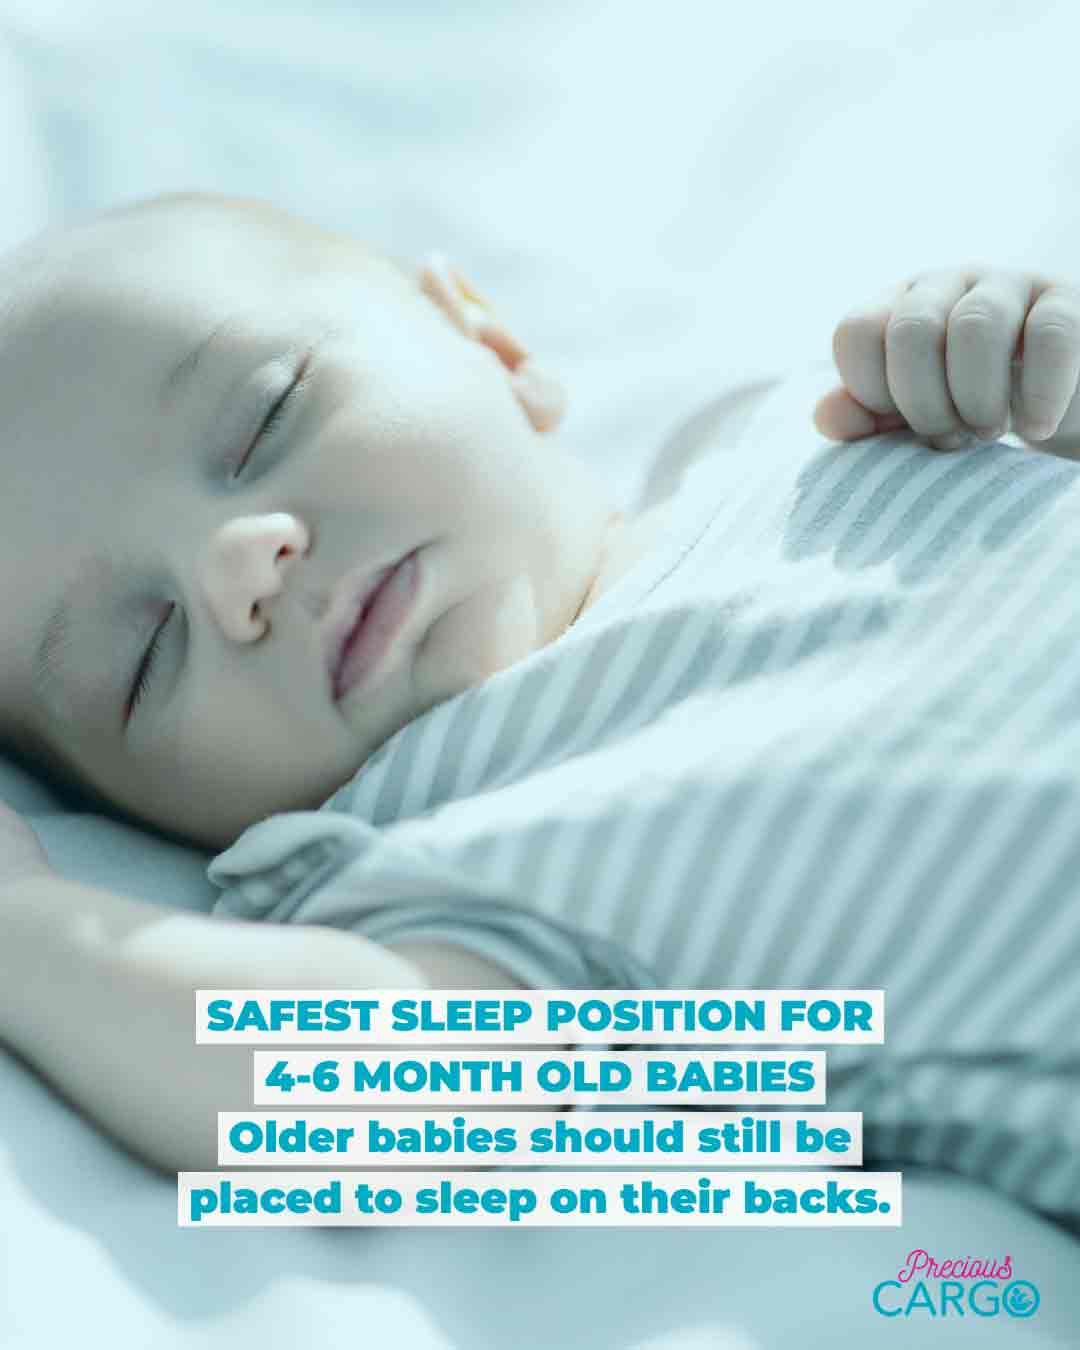 safest sleeping position for babies 4-6 months